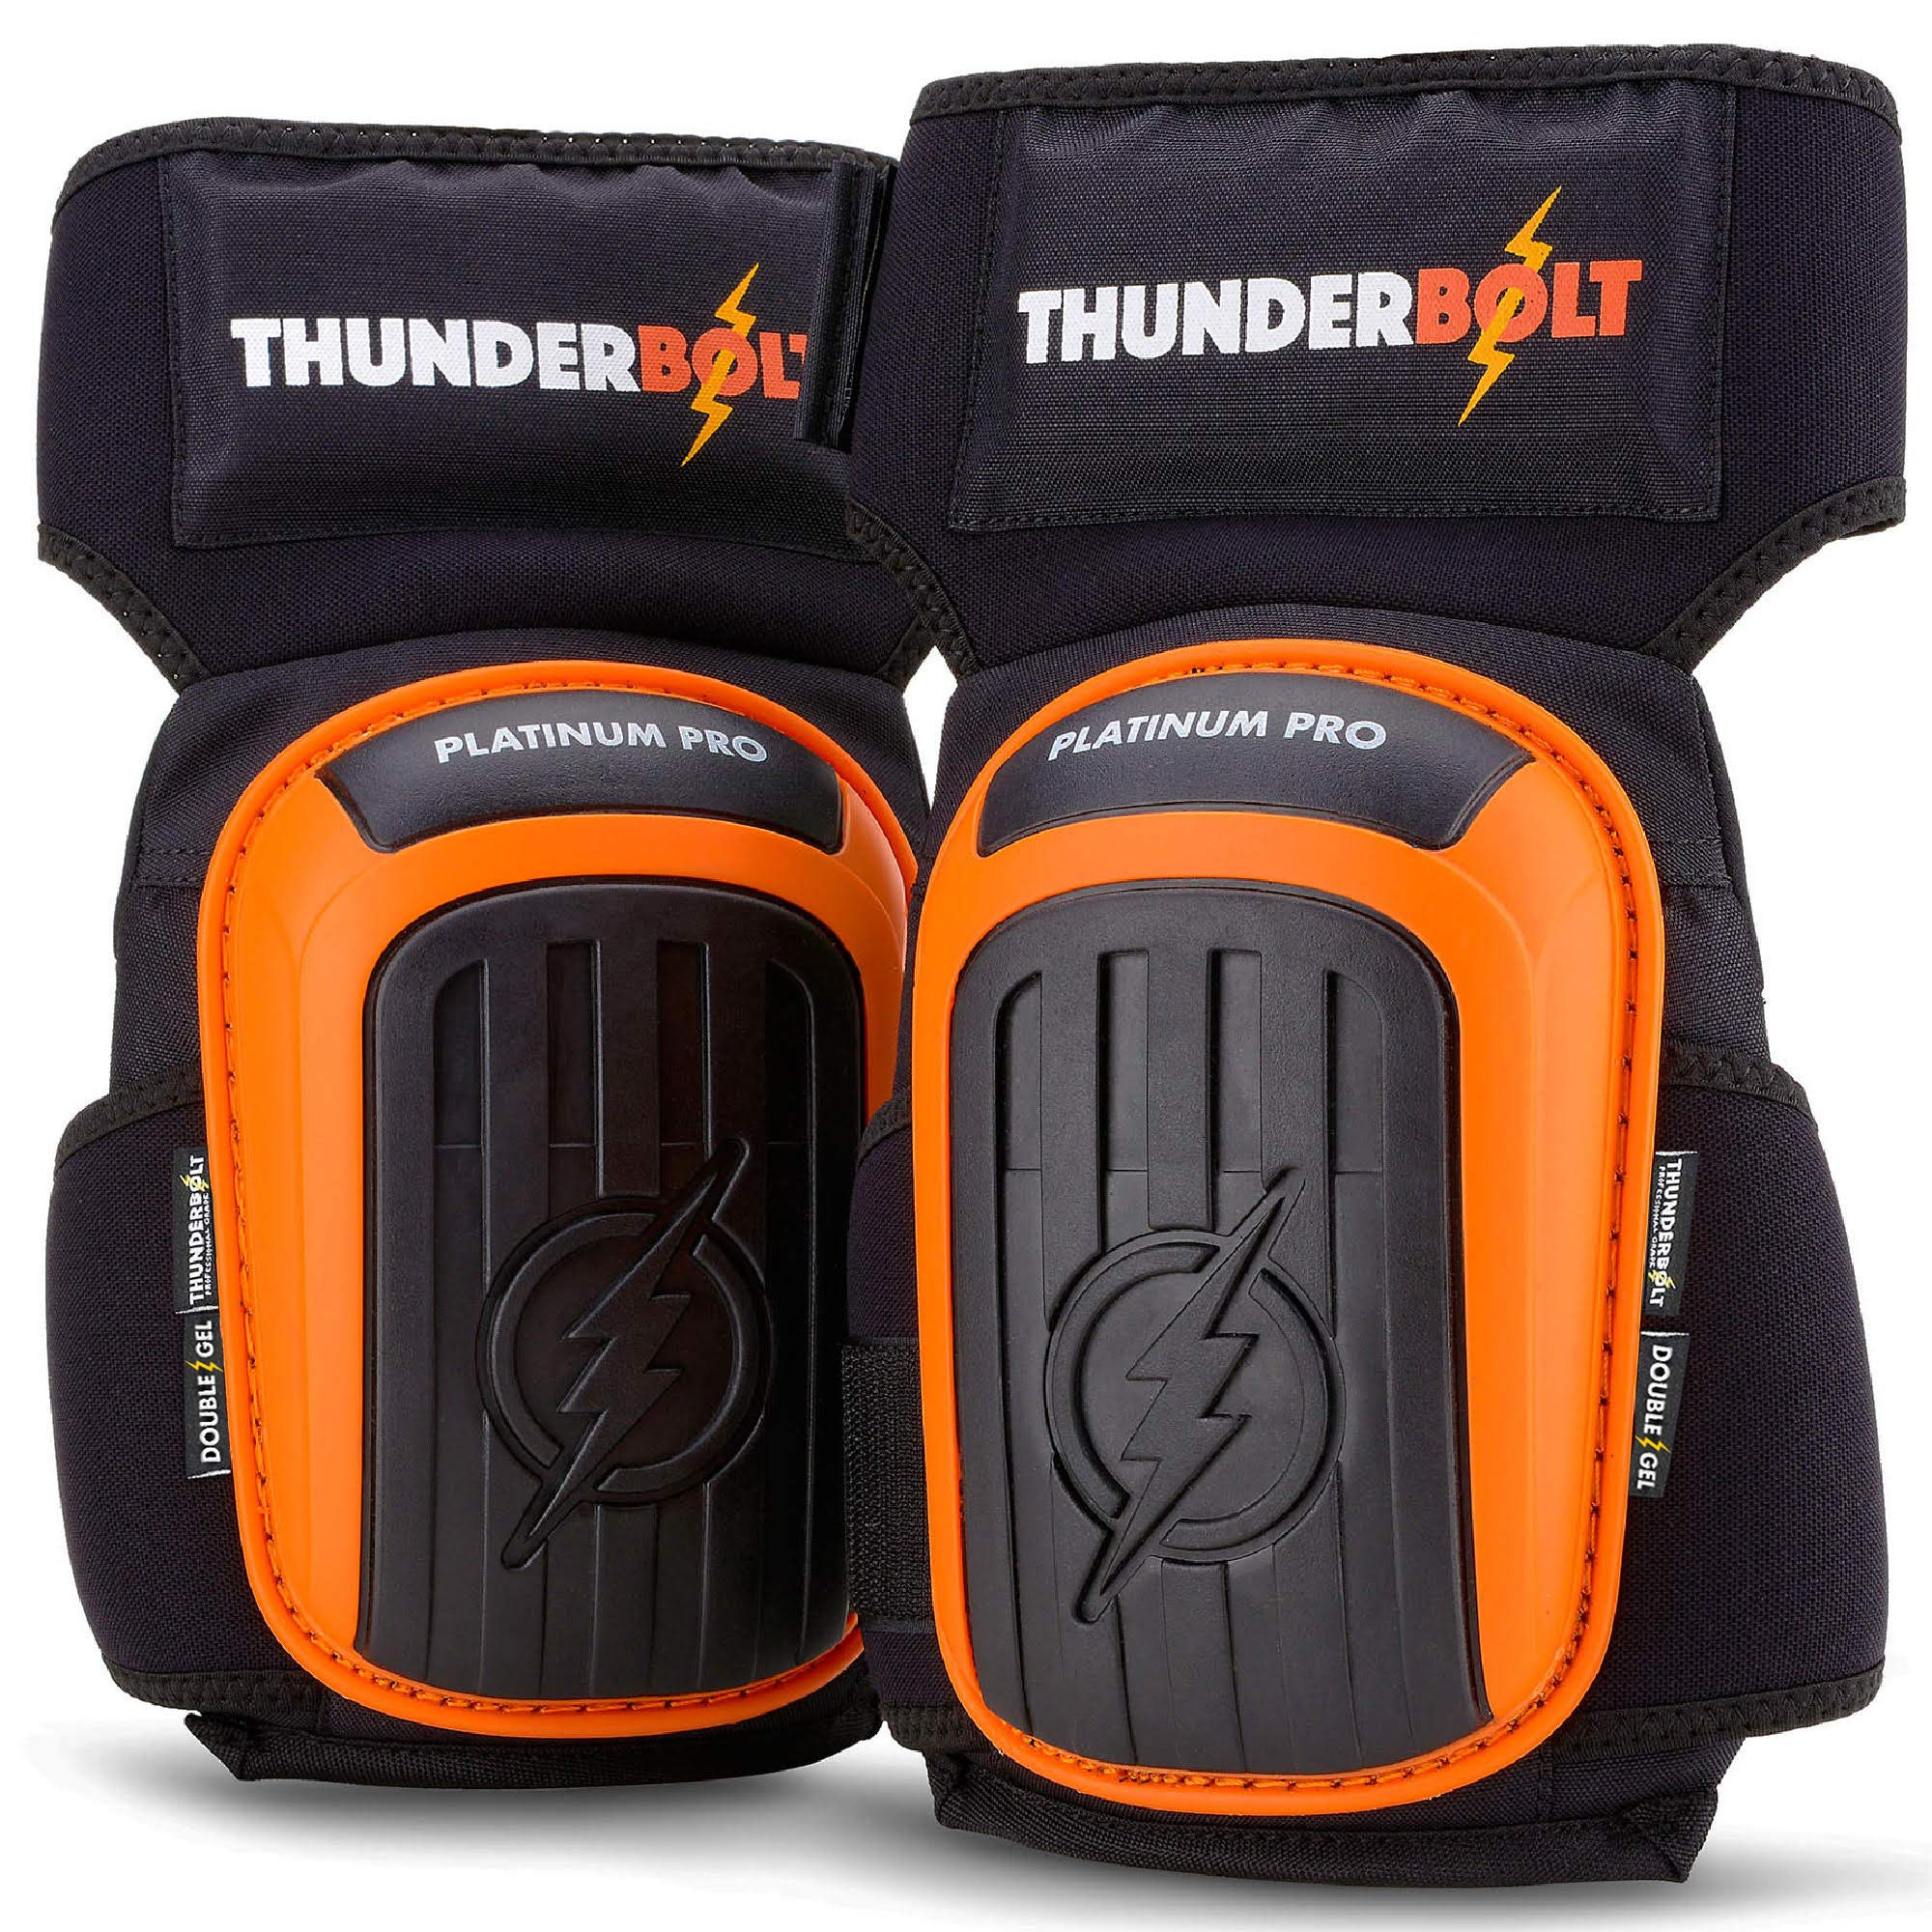 Knee Pads for Work by Thunderbolt with Heavy Duty Gel Cushion Perfect for Construction, Flooring and Gardening with Adjustable Non-Slip Straps